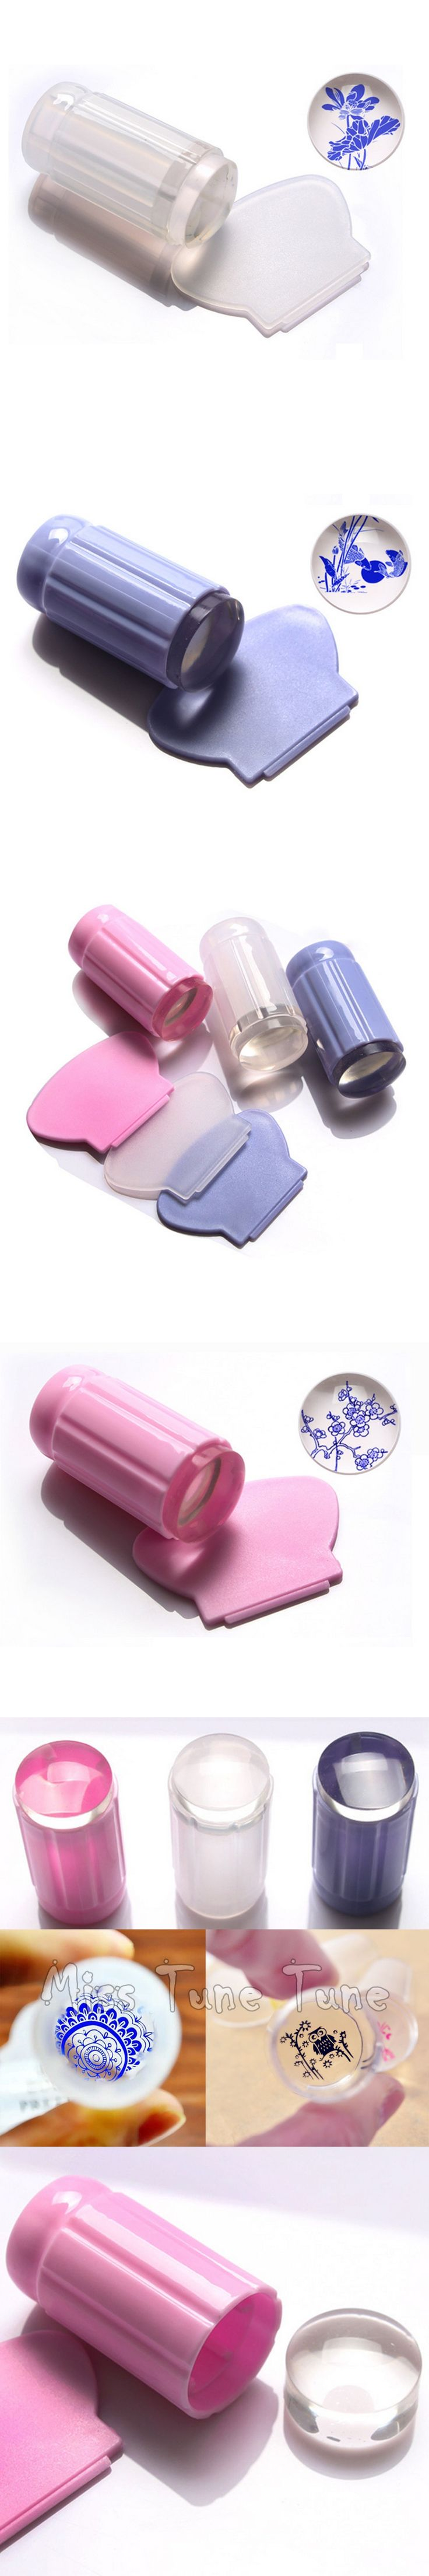 Clear Jelly Nail Art 2.8cm Large Stamper Transparent Silicone Marshmallow Nail Stamper & Scraper Kit